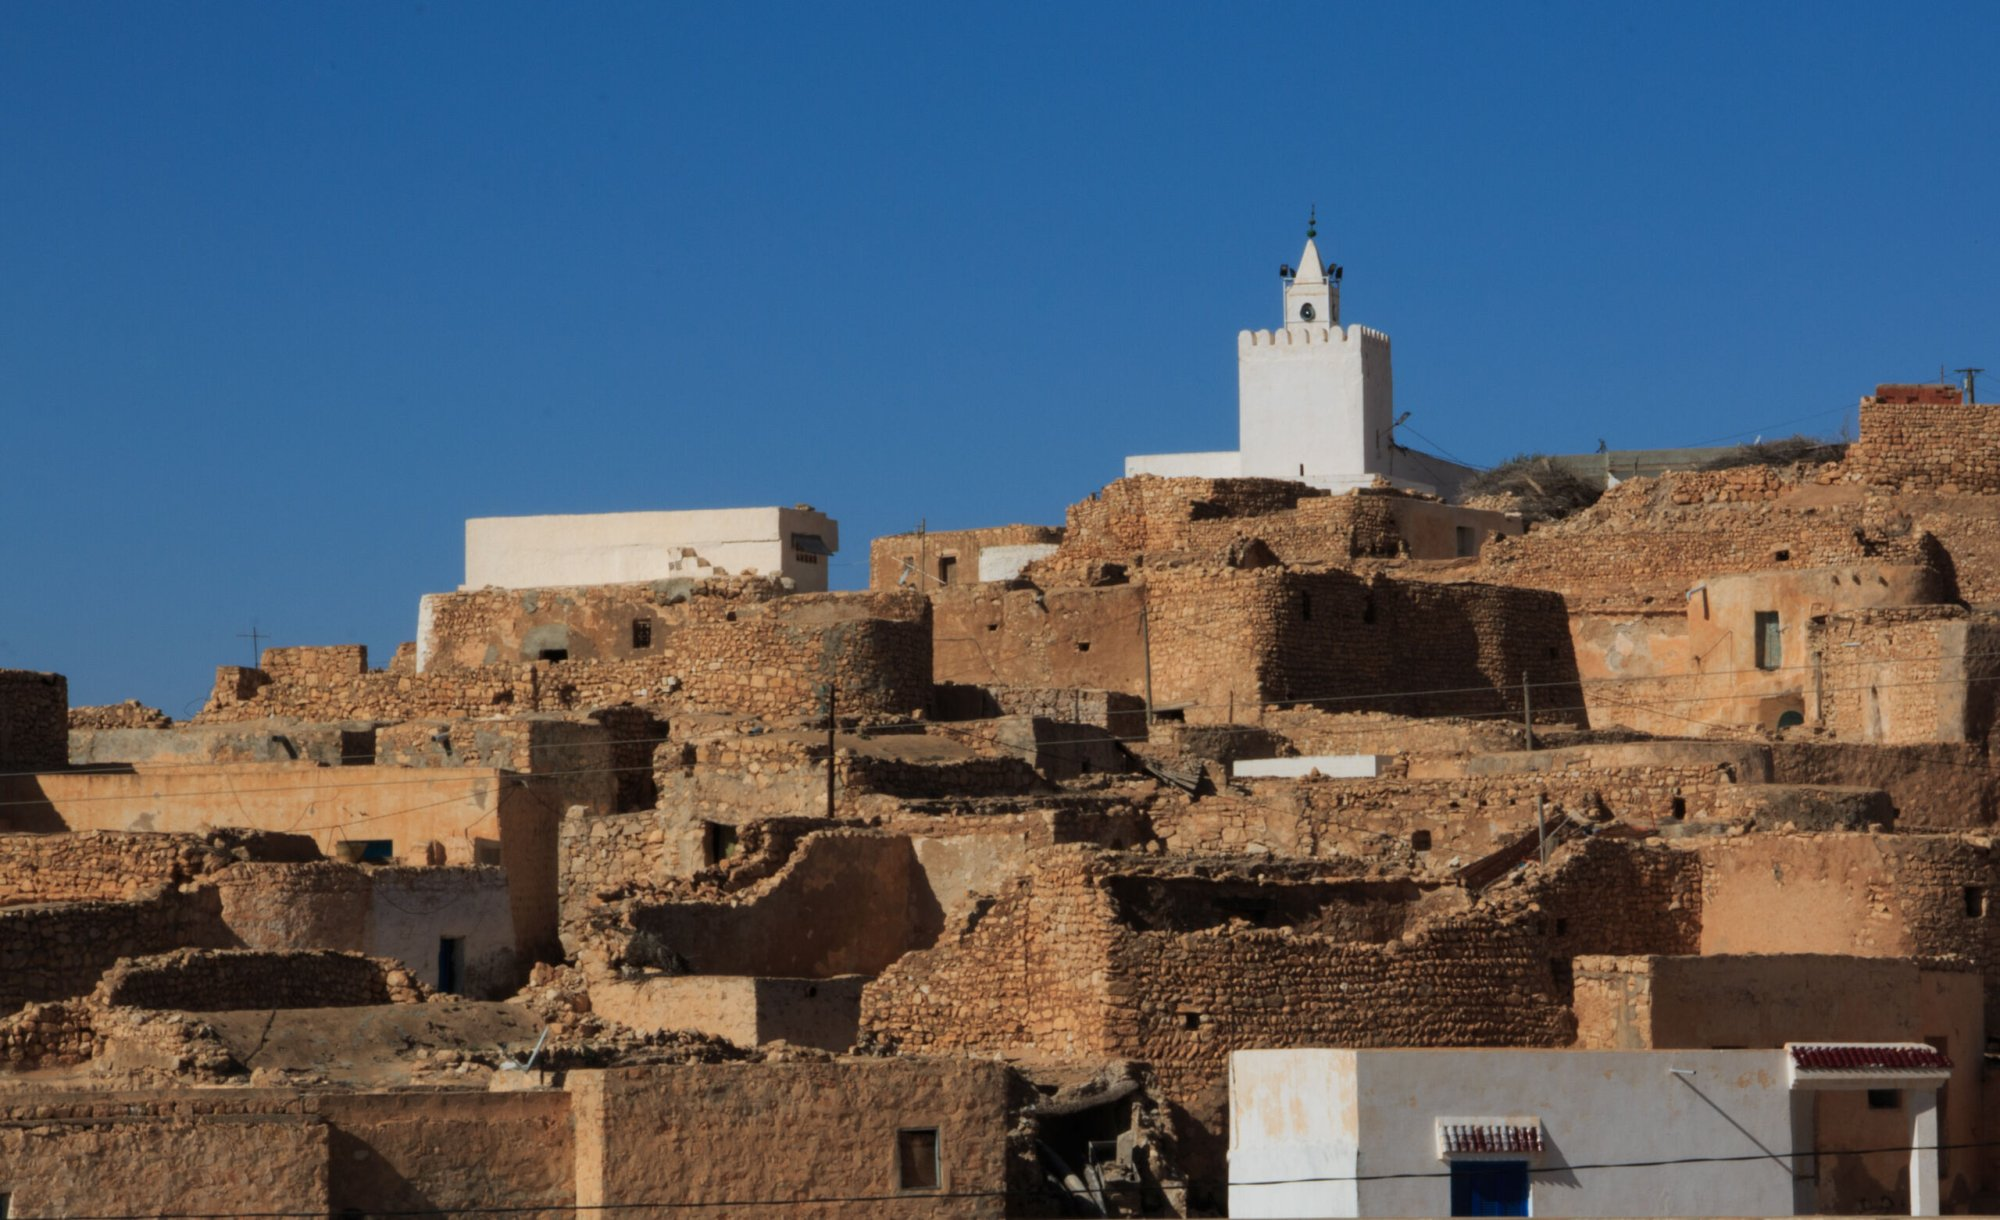 North Africa: Skyline of city highlights the mosque.  Photo by Paul Smith More Info